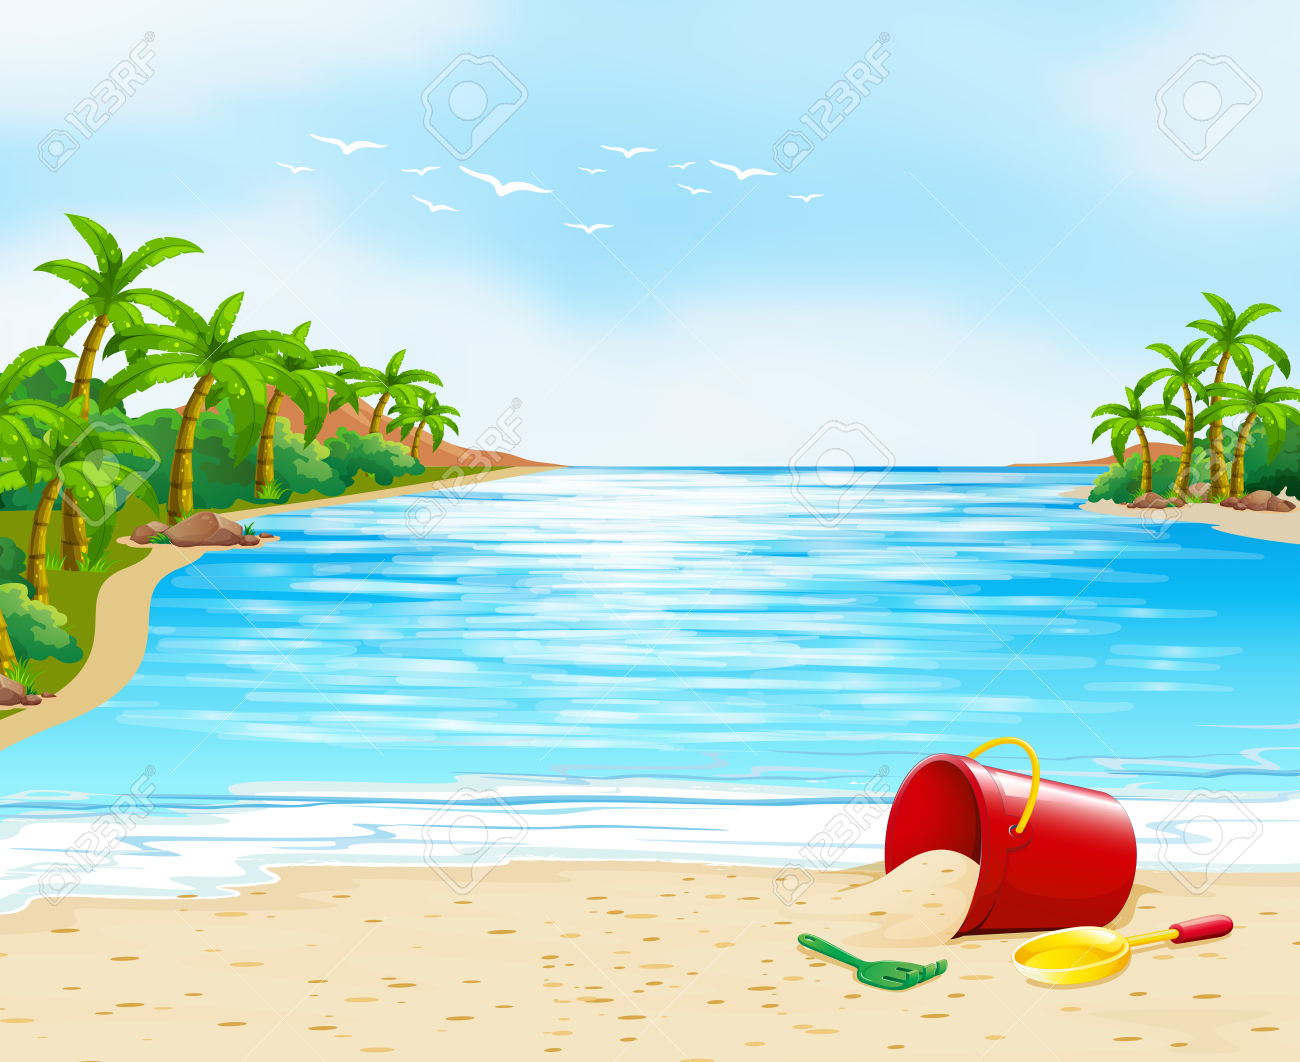 Ocean View With Bucket On The Sand Illustration Royalty Free.